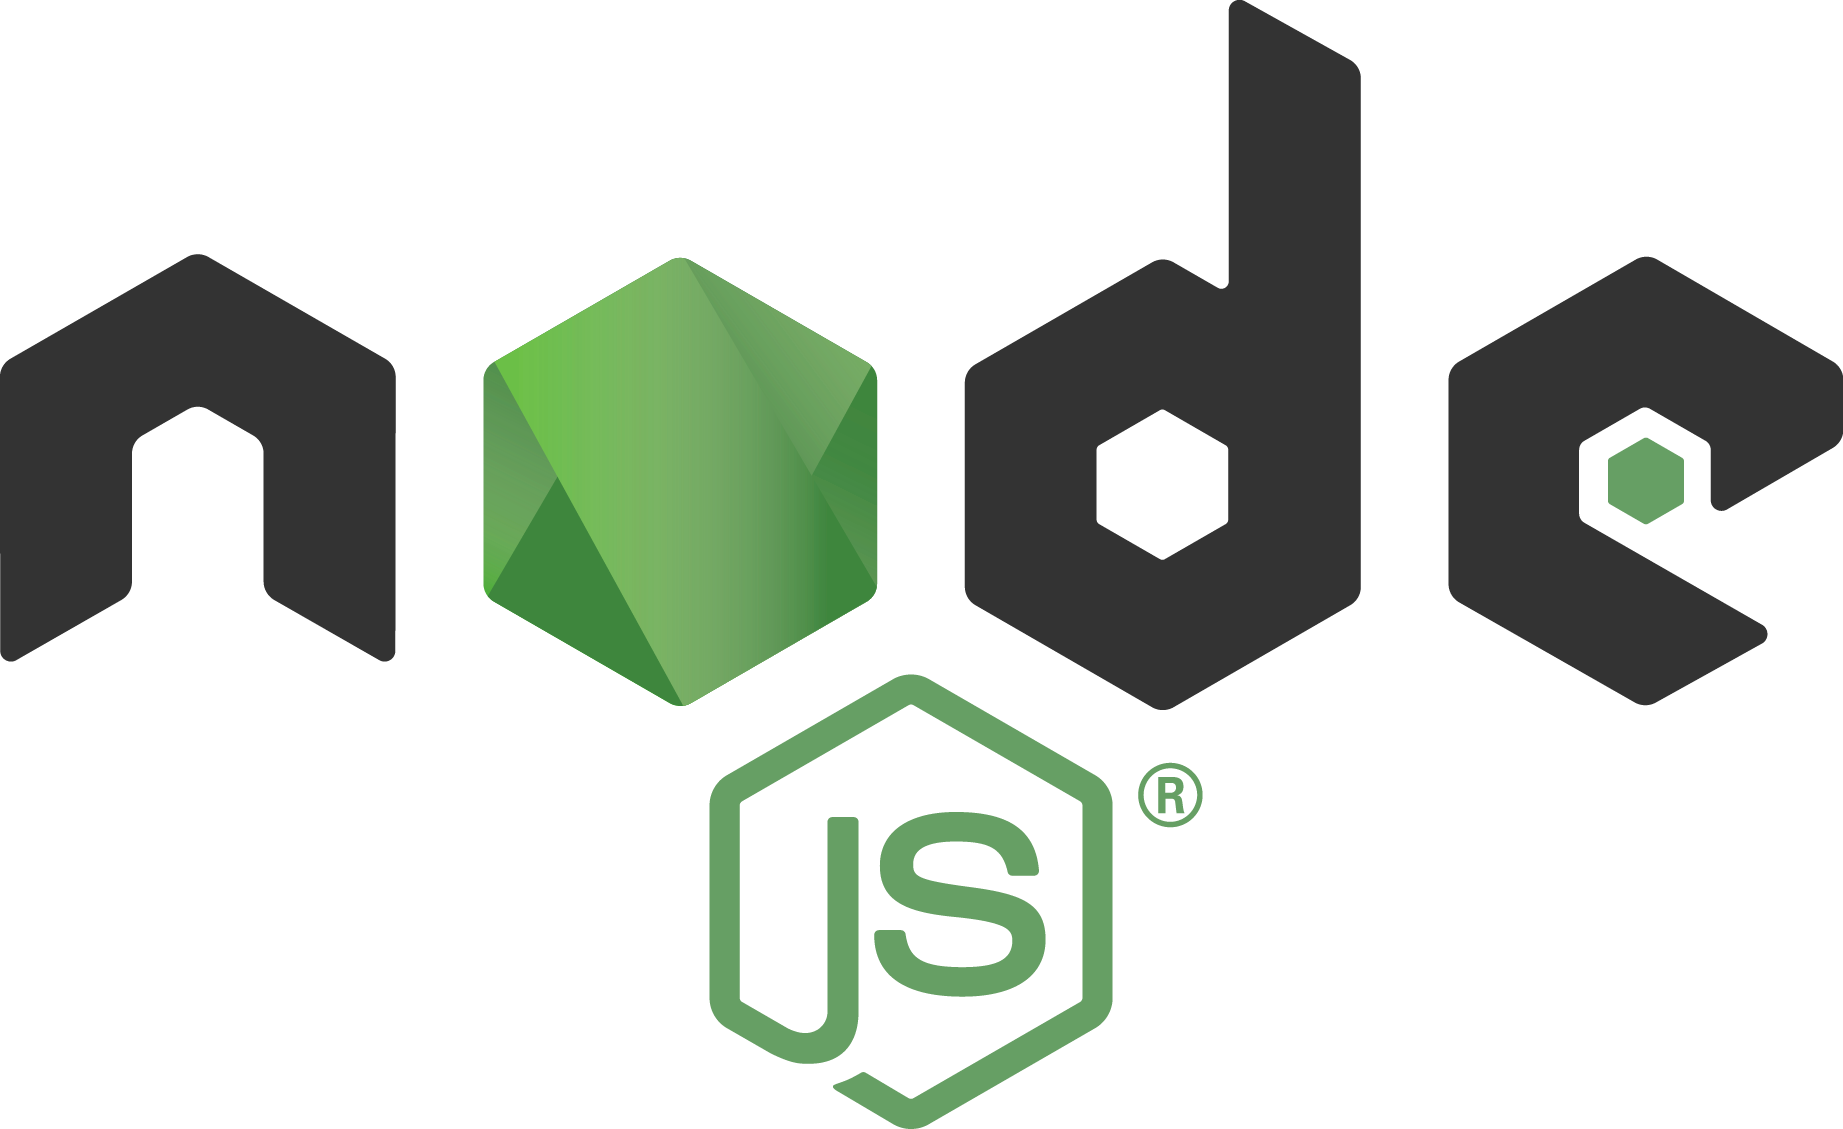 Meet The People Who Make Nodejs James Snell Collection Hello I Am New To Electronics It Has Recently Become A Hobby Have On March 20th However Started Path With Nearform That Me Working Core Full Time Do You Any Hobbies